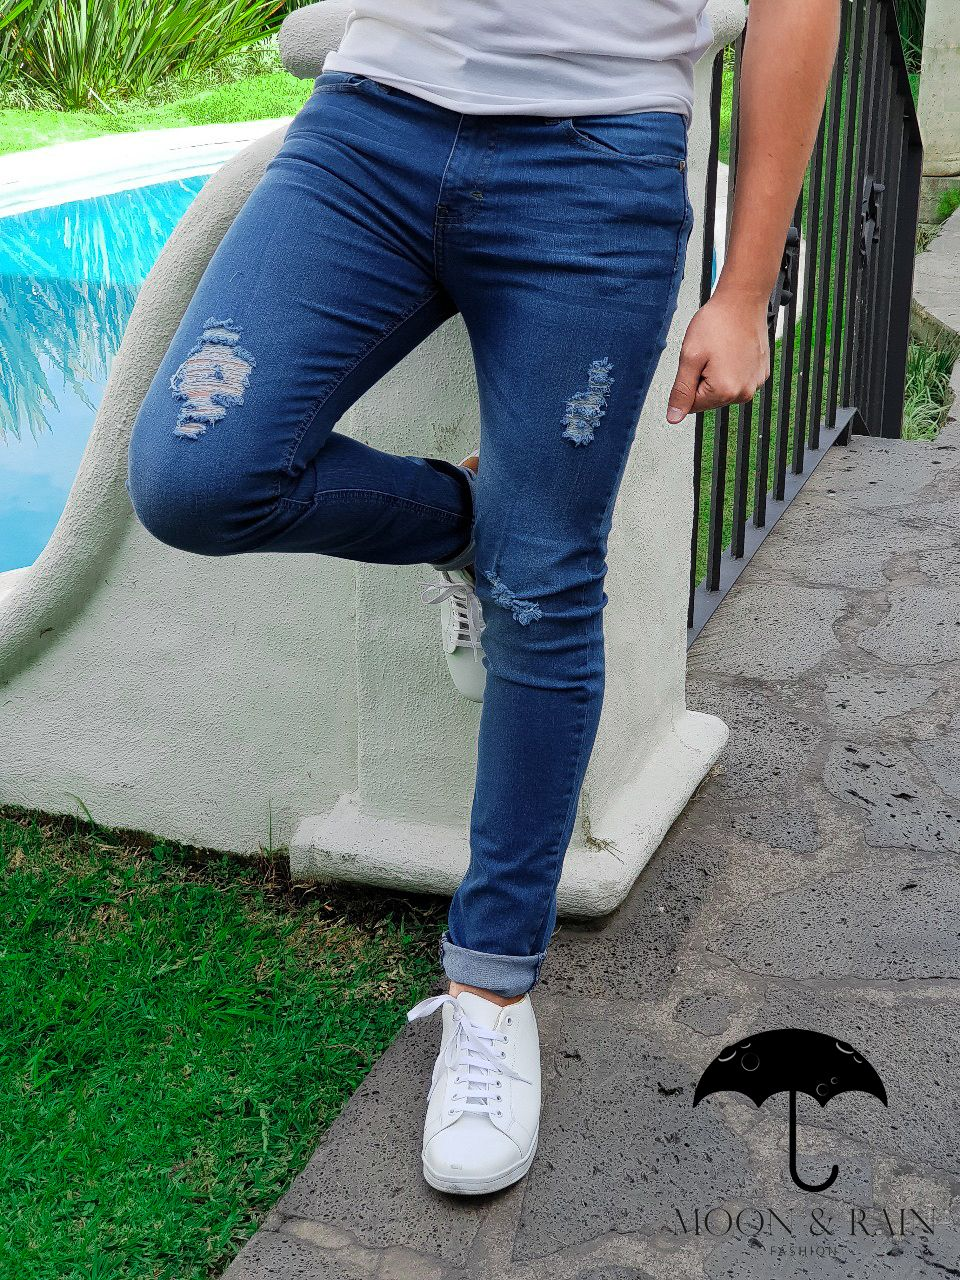 Pantalon De Mezclilla Azul Claro Con Destruccion Mens Pants Fashion Mens Outfits Jeans Style